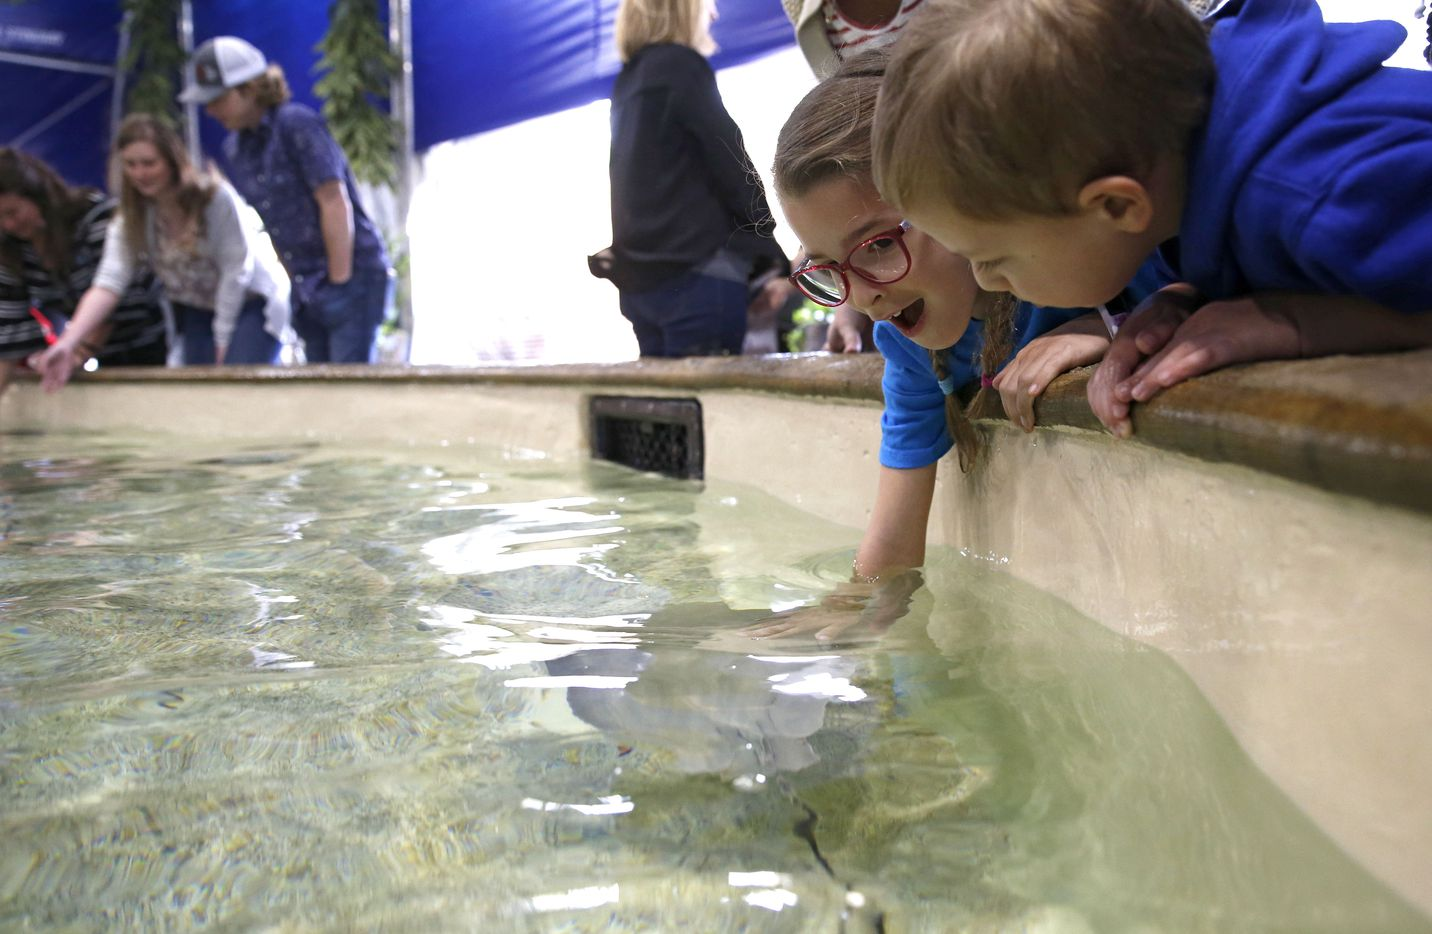 Jillian Heinrichs, 7, of Arlington reacts as she touches a stingray during the grand opening of Stingray Cove at the Fort Worth Zoo in Fort Worth on March 28, 2019. Stingray Cove is a new exhibit where people can touch different stingrays and some small sharks in a saltwater pool. The all-day entry fee is $5 ($4 for zoo members). There is also an option to feed the stingrays.